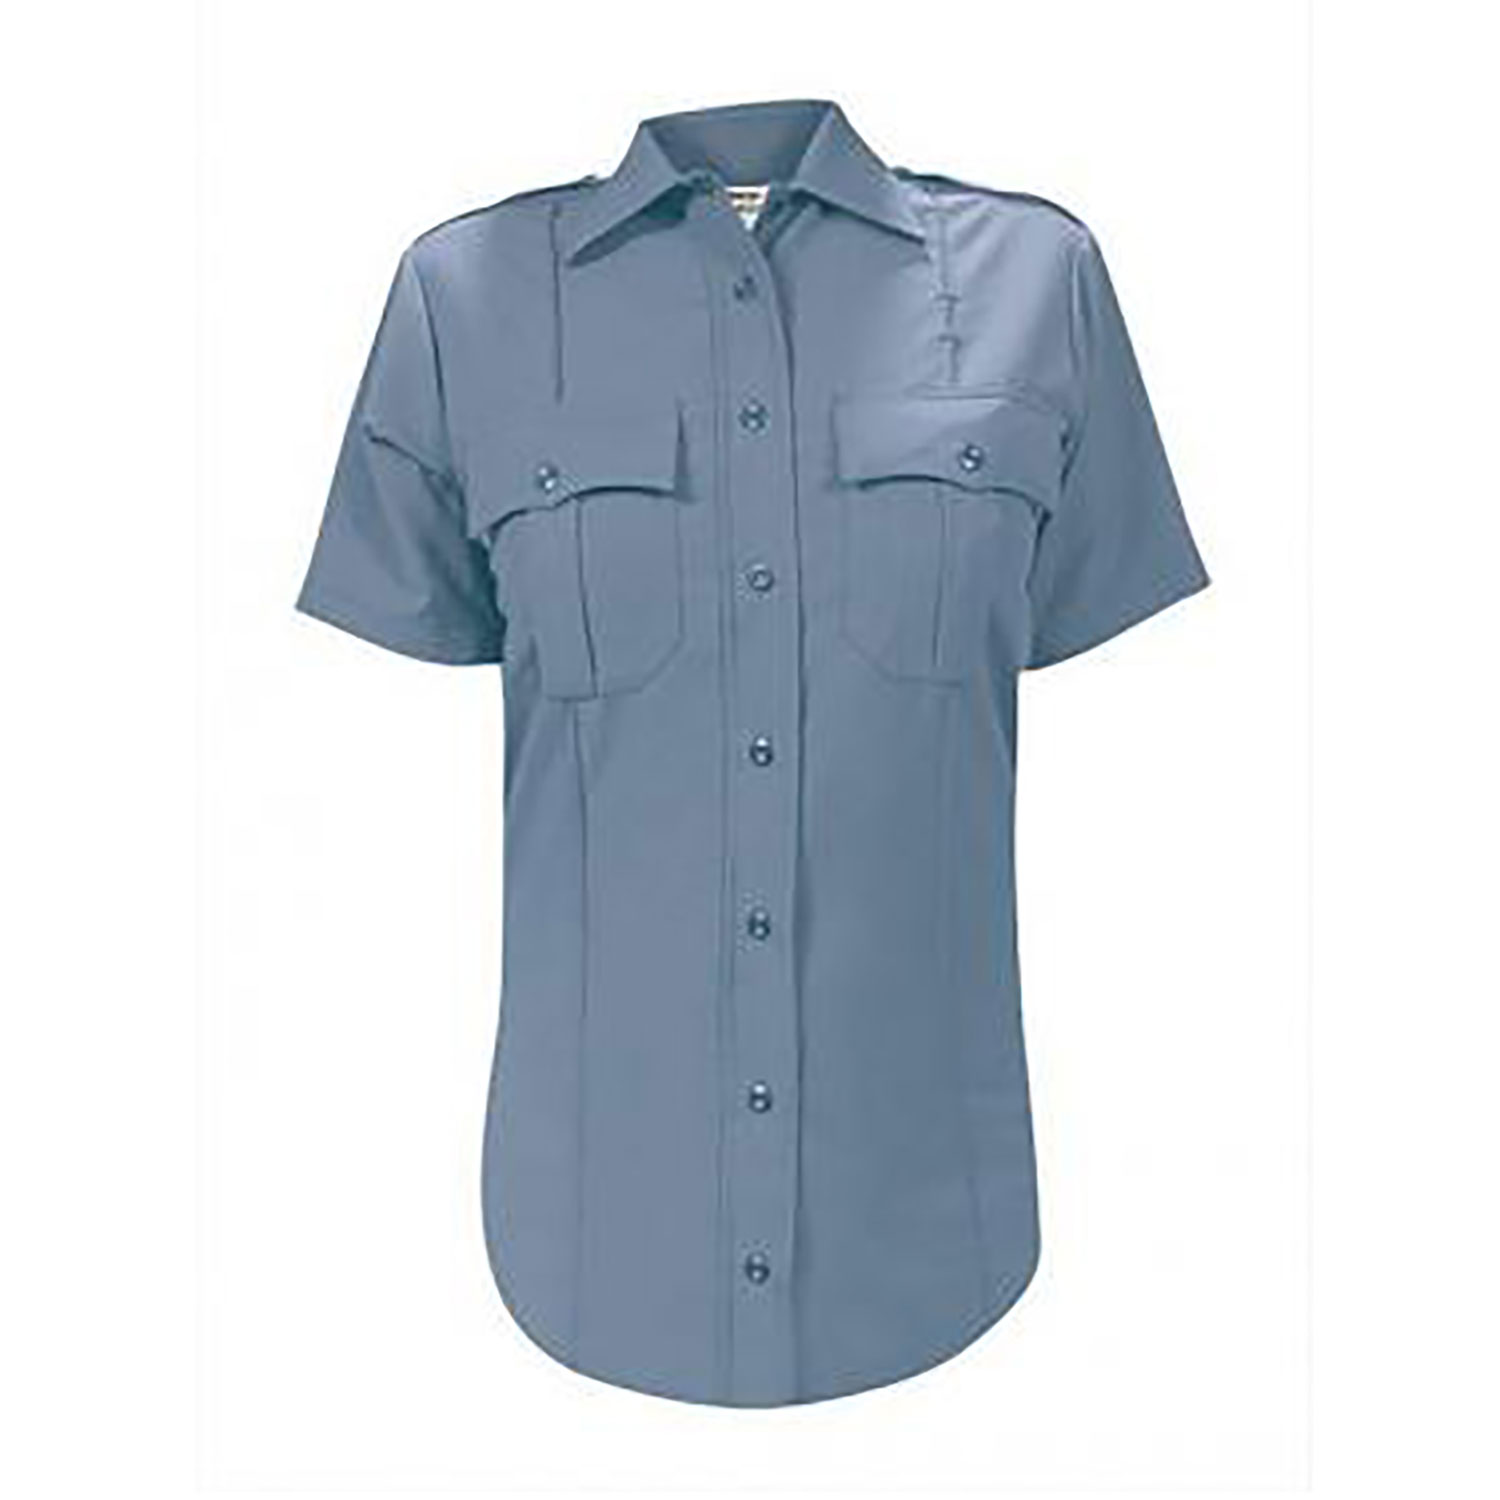 Elbeco Women's DutyMax Short Sleeve Shirt